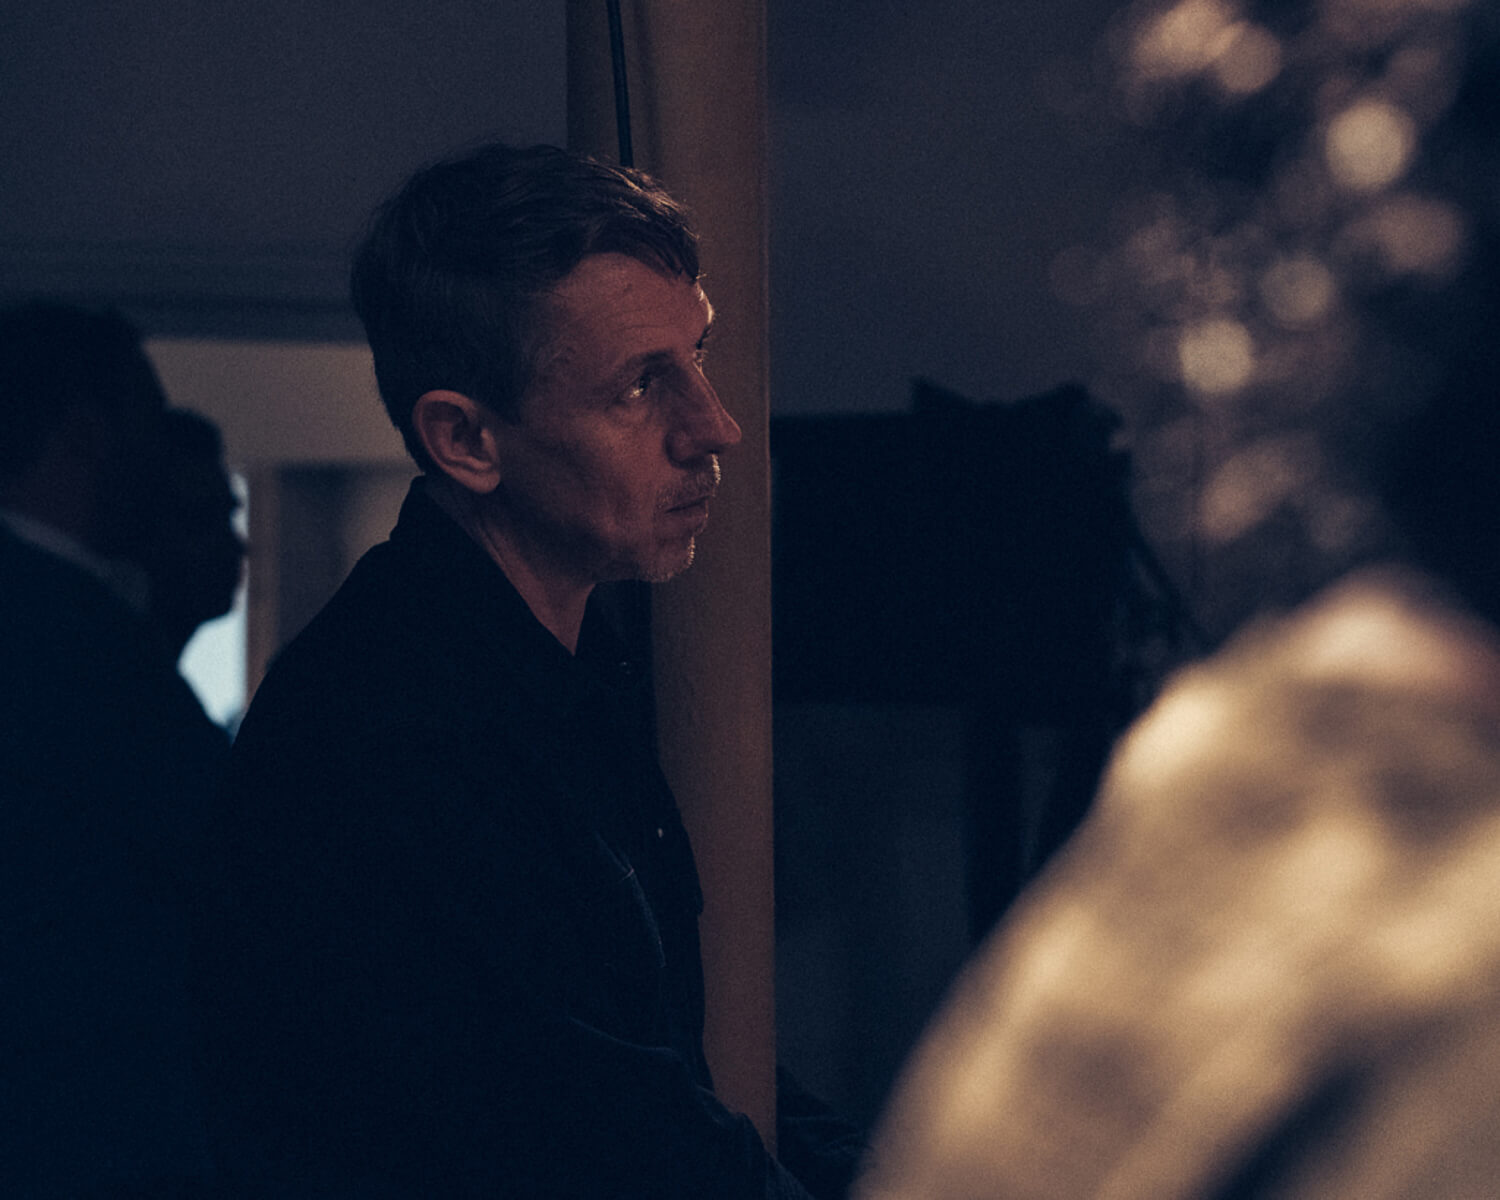 Gilles Peterson watches Jazz  by lifestyle photographer Tim Cole